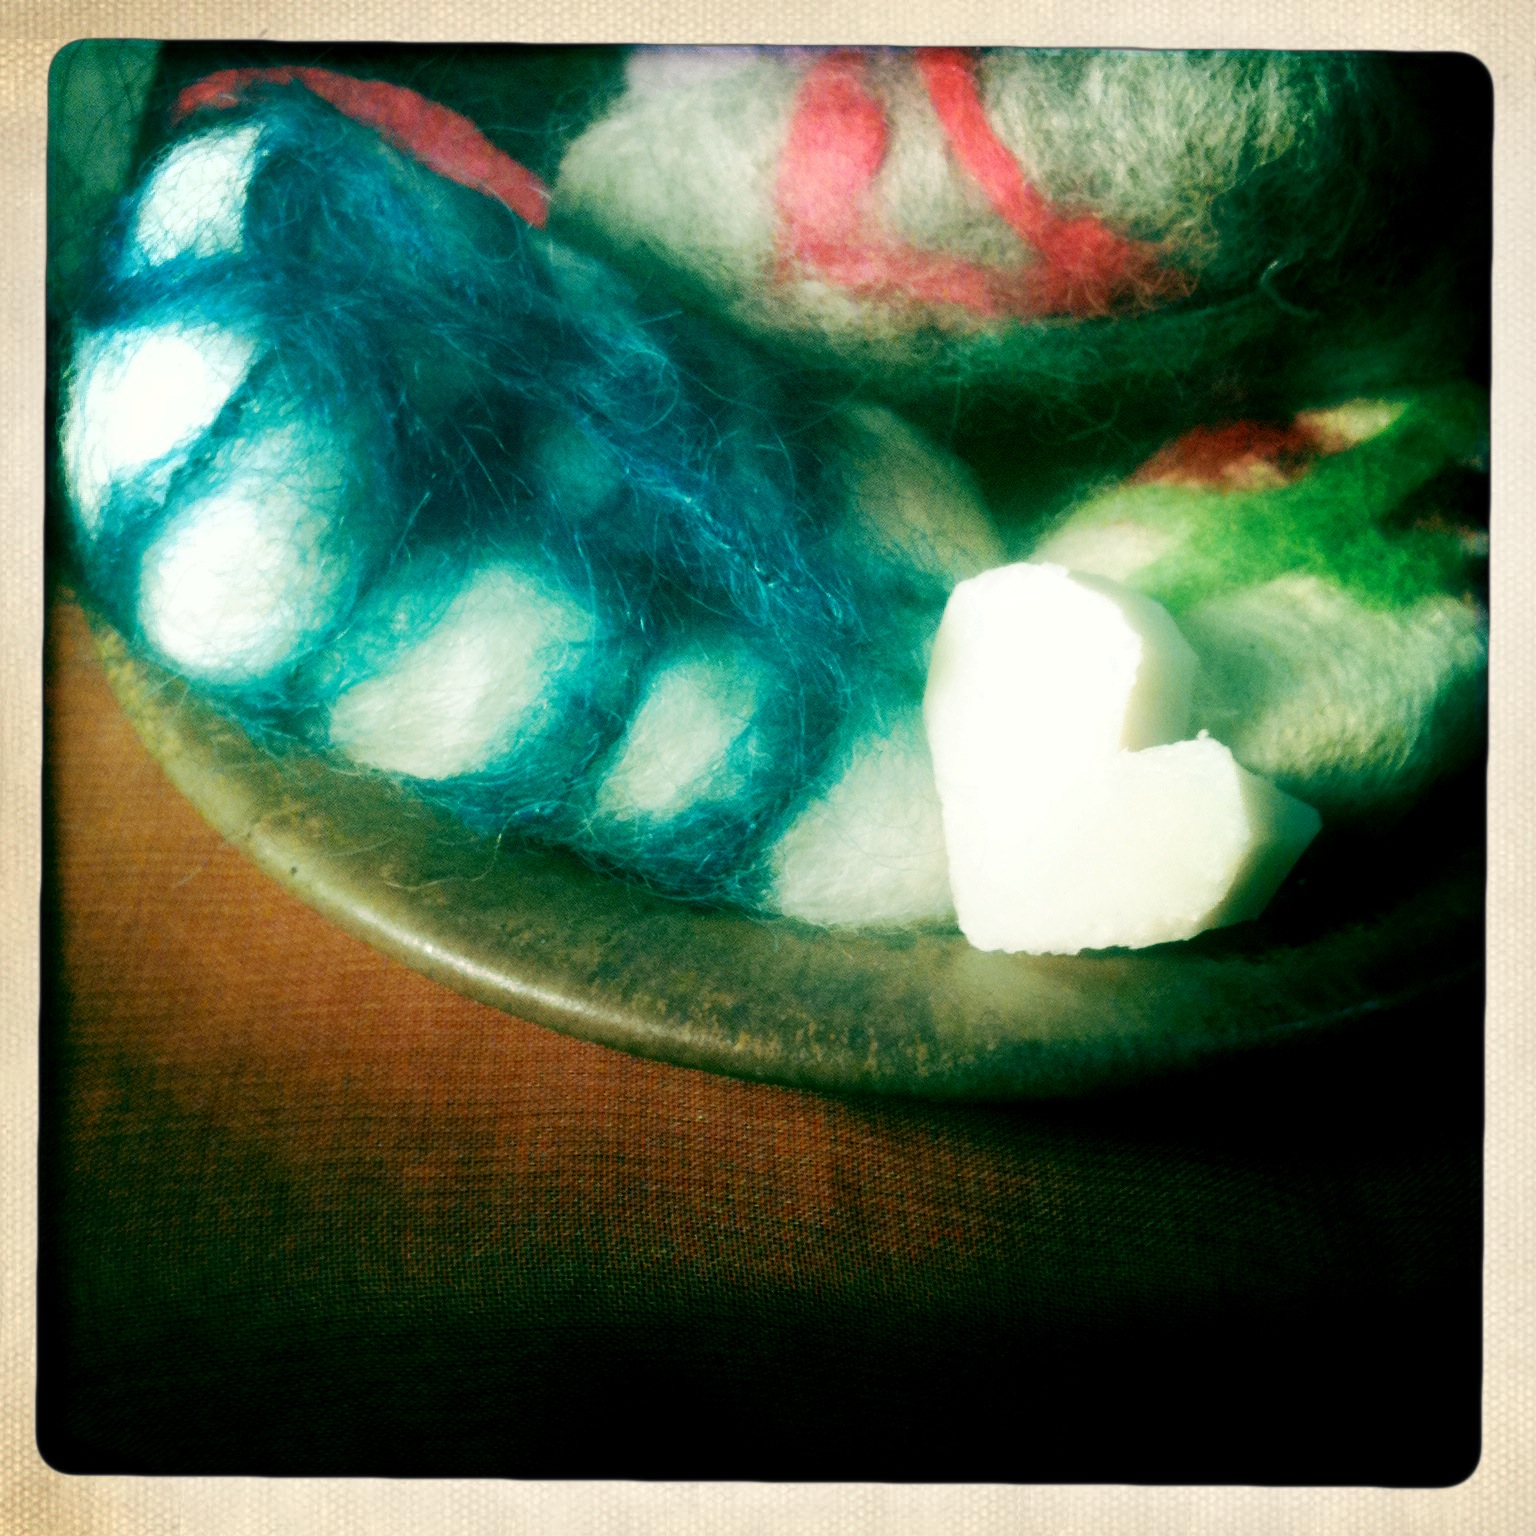 Felted soaps make great gifts and are fun to use at bath-time!